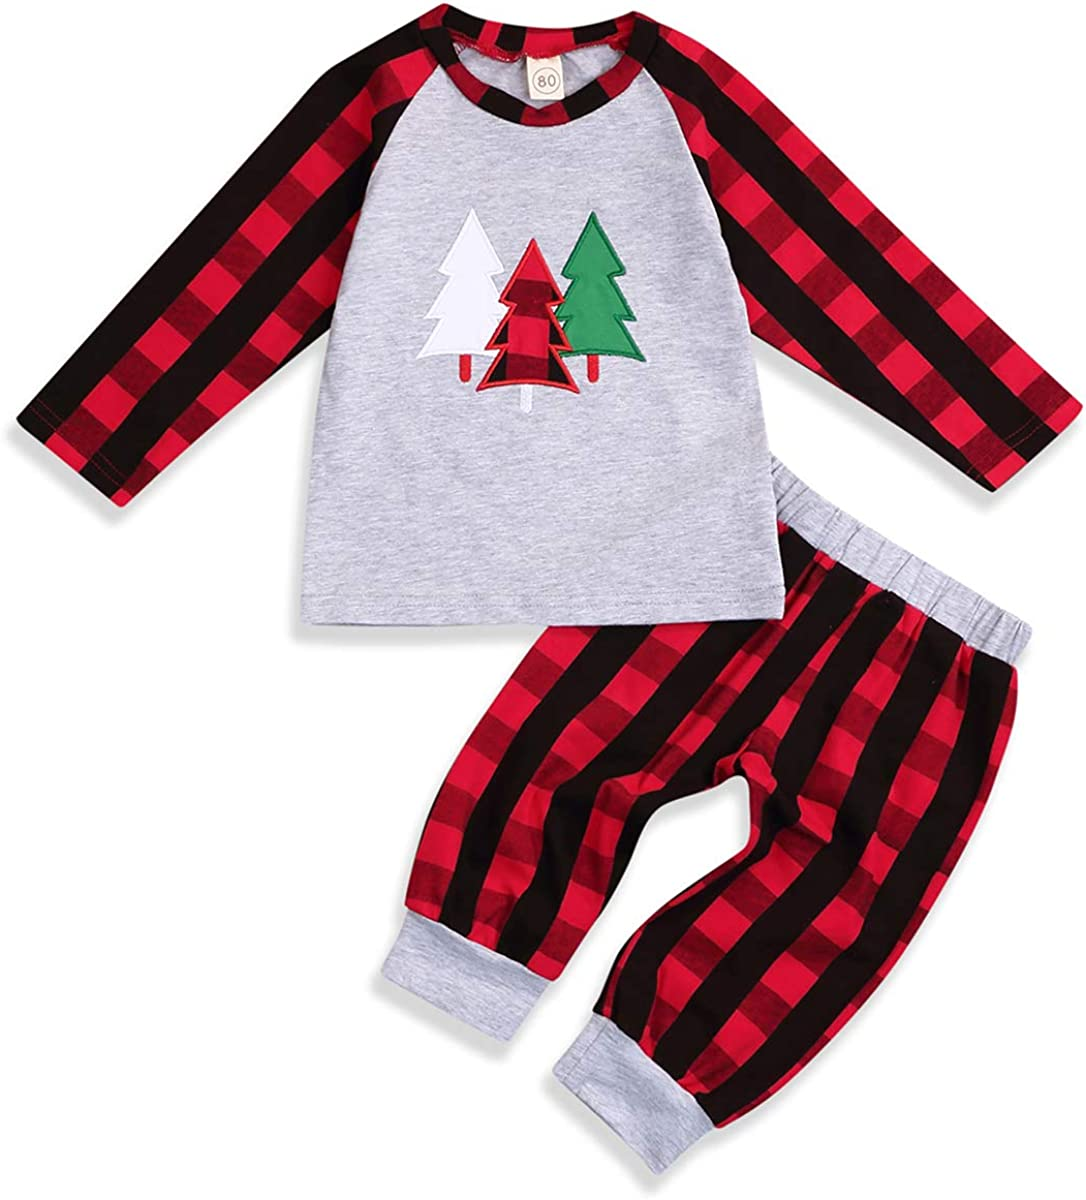 2Pcs Kids Christmas Outfits Toddler Baby Boy Girl Clothes Plaid T-Shirt Sweater Tops +Red Plaid Pants Fall Winter Clothing